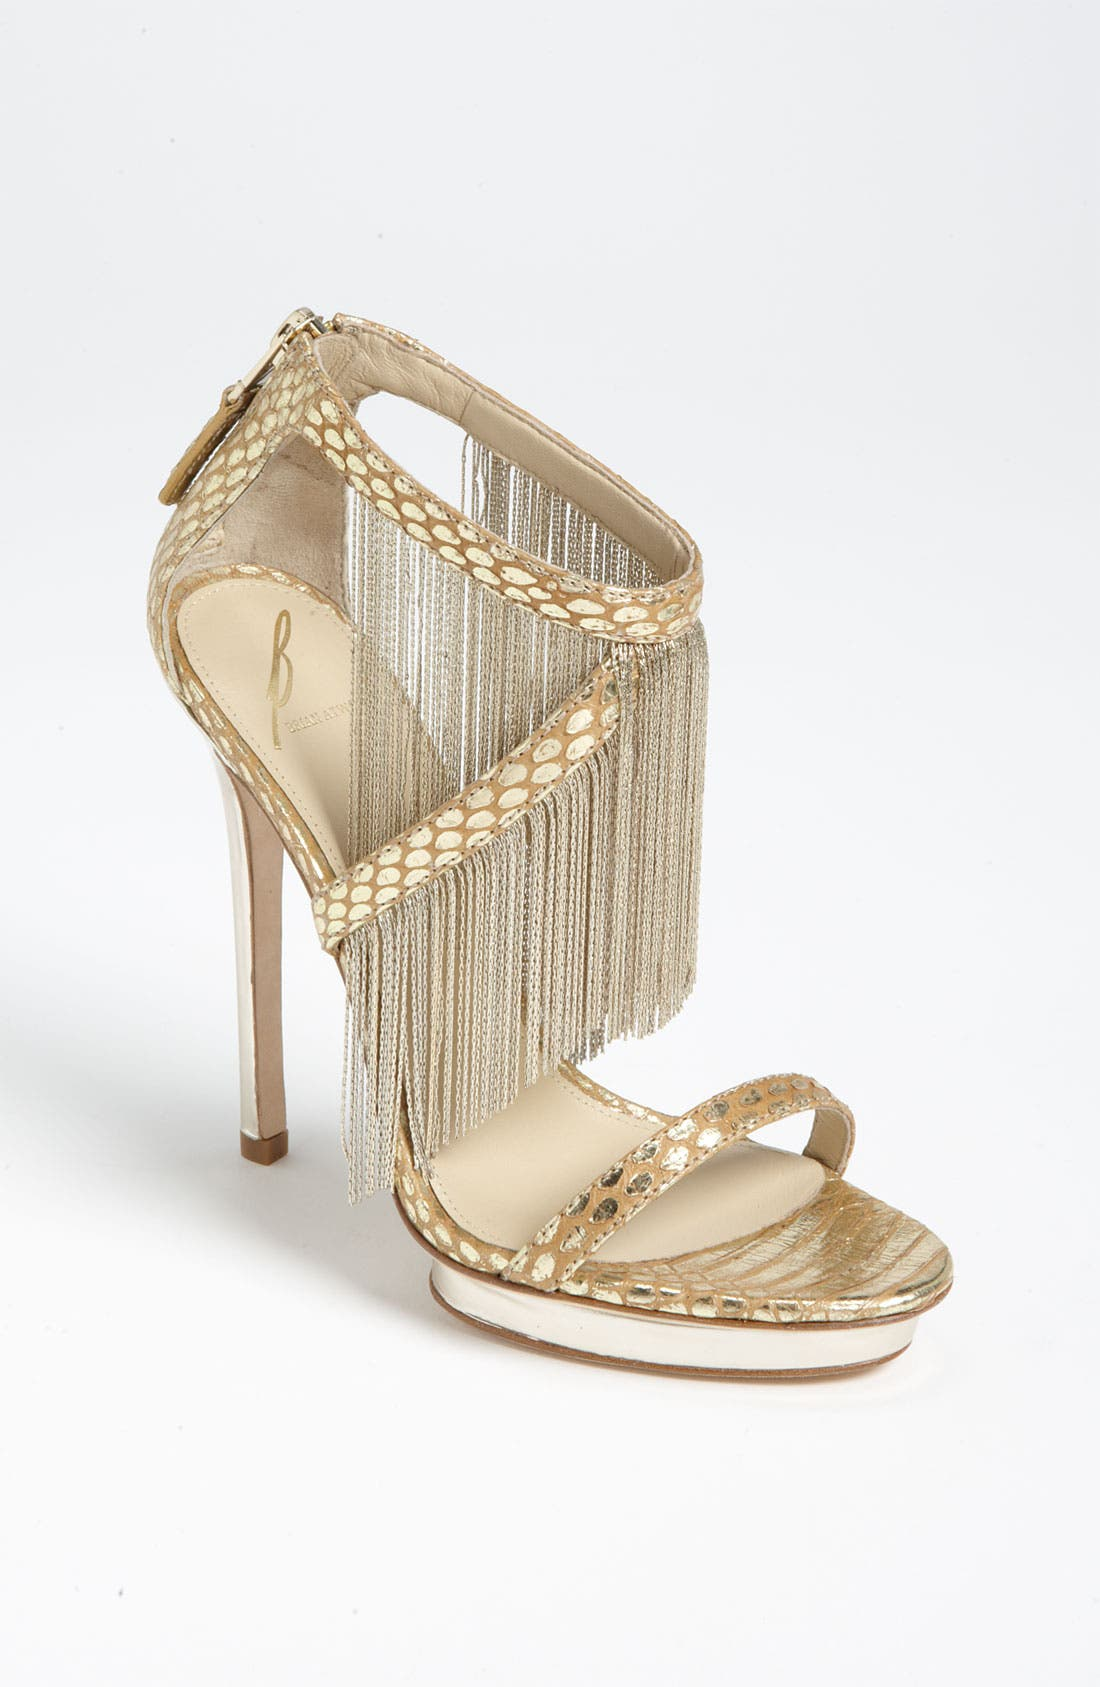 Main Image - B Brian Atwood 'Cassiane' High Sandal